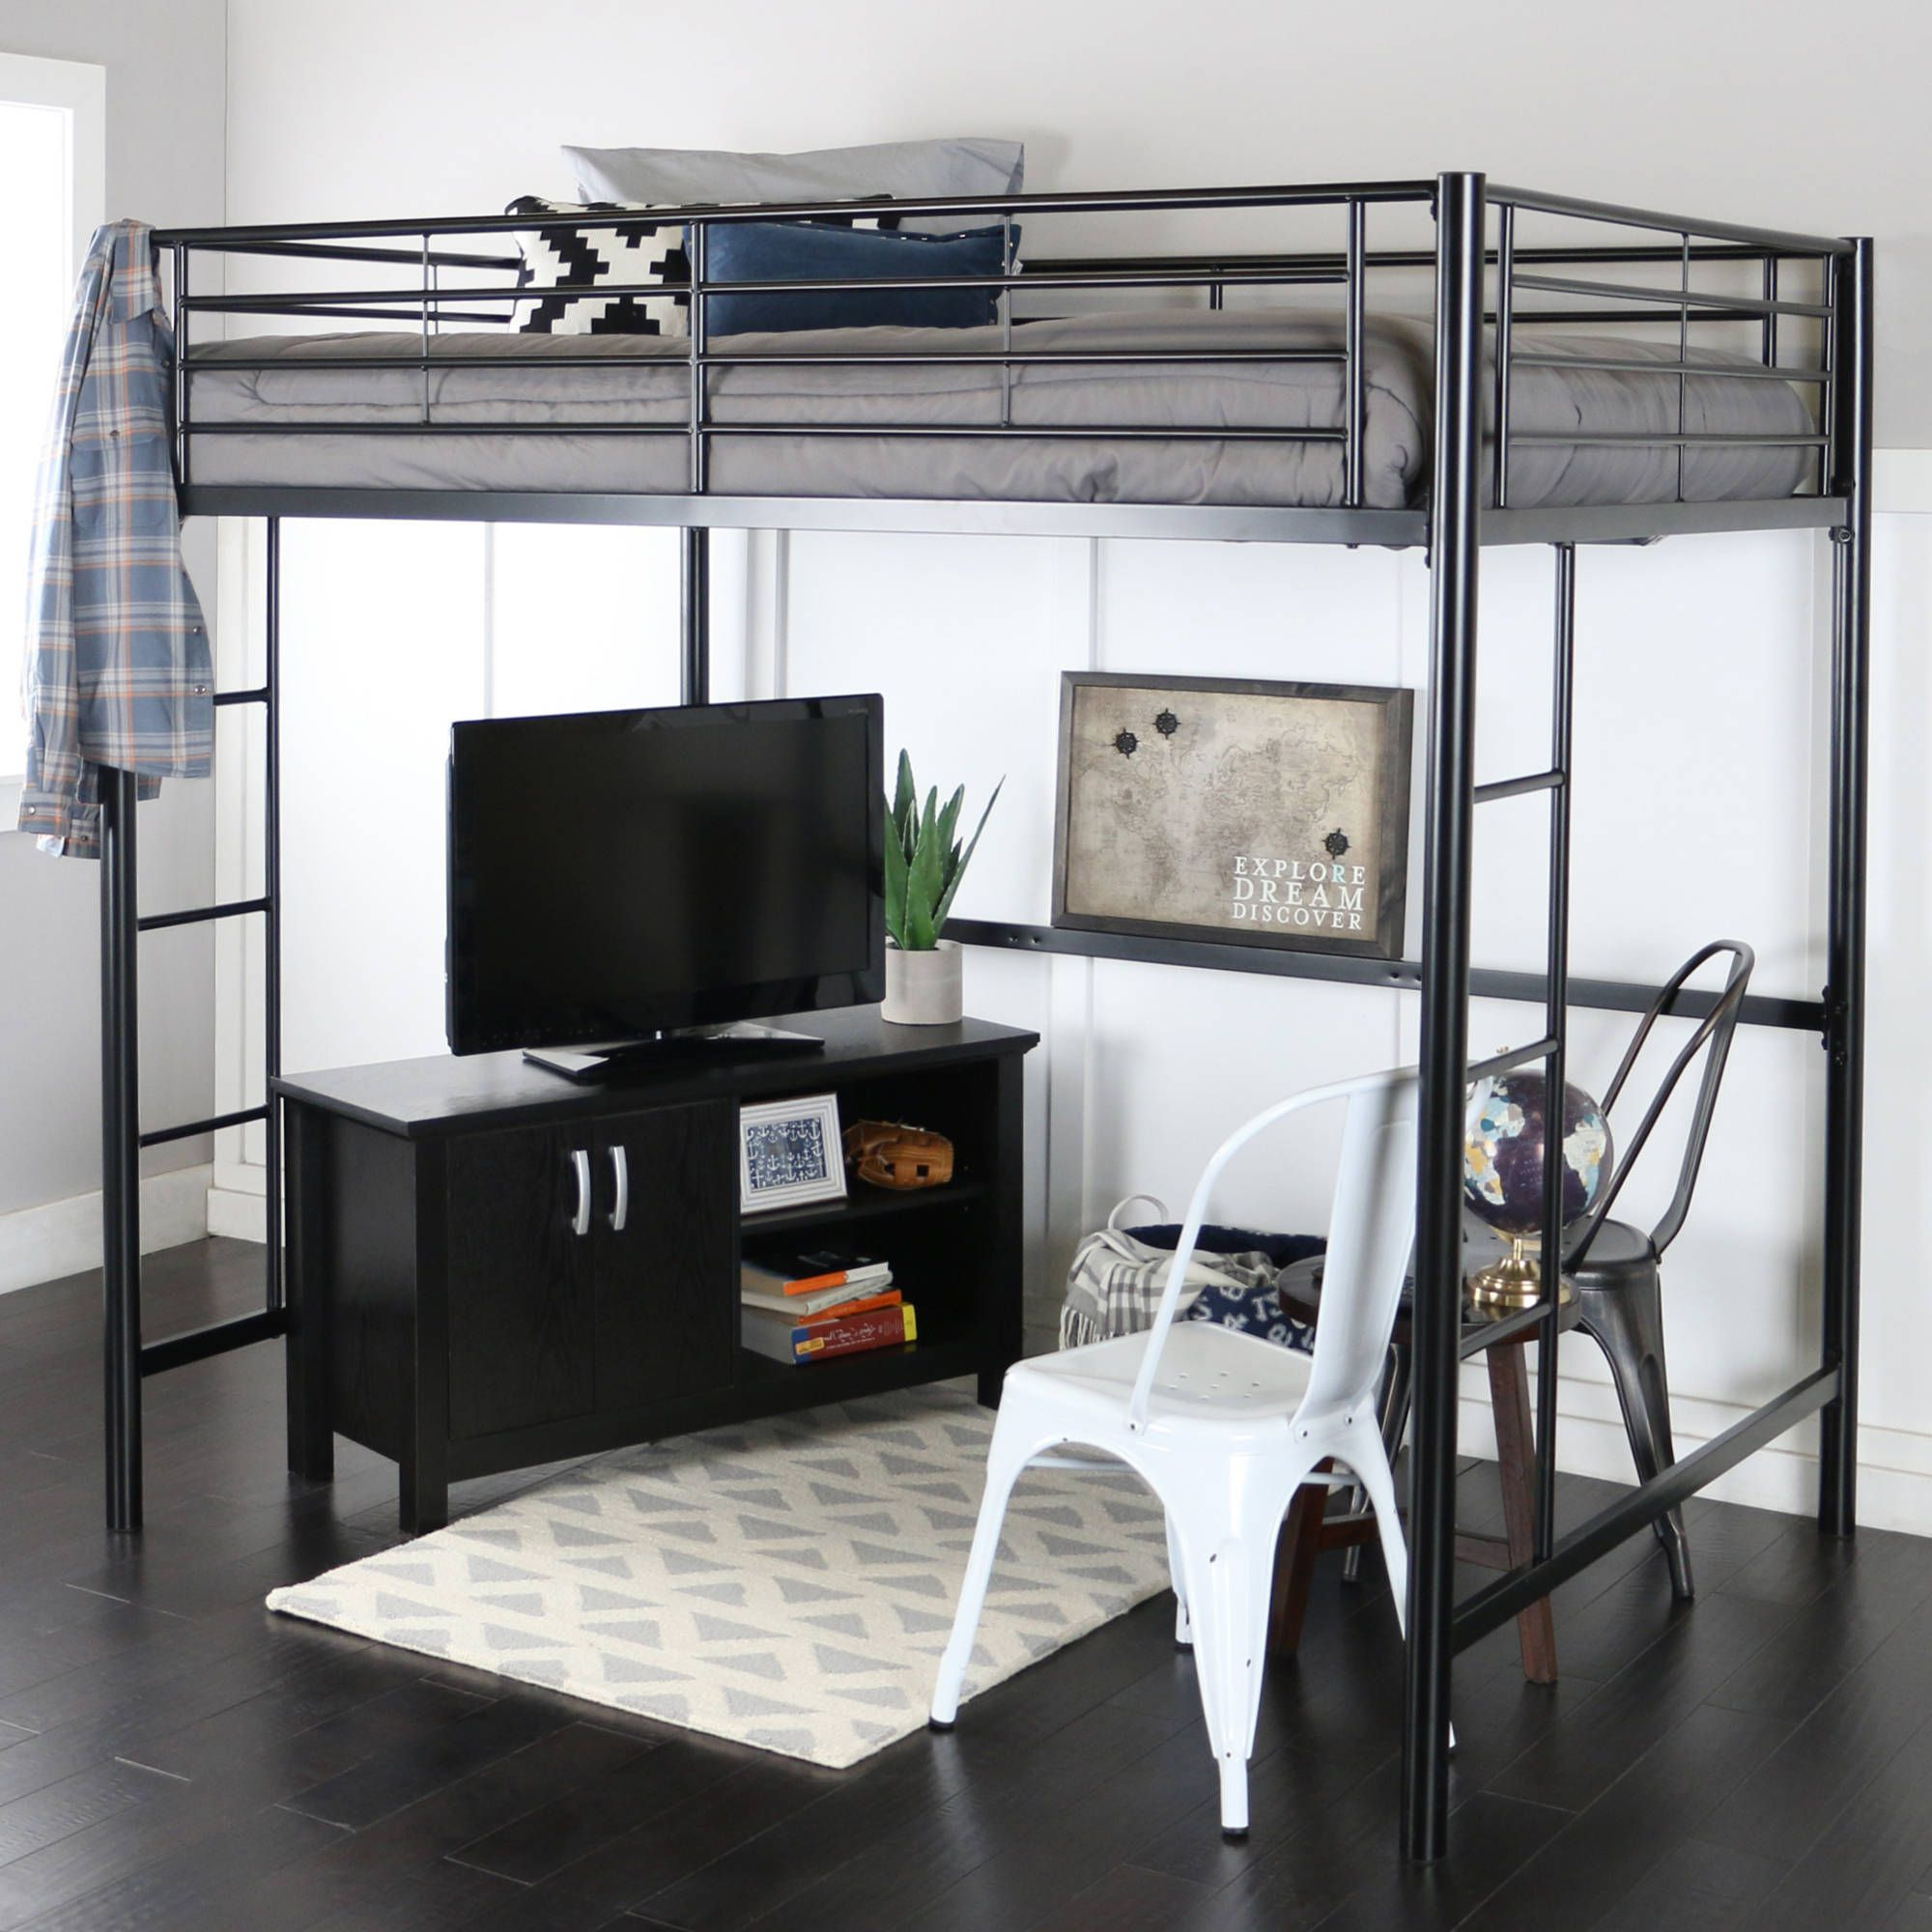 Bunk bed loft ideas   Full Size Modern Loft Beds for Your Tiny Apartment  Modern lofts